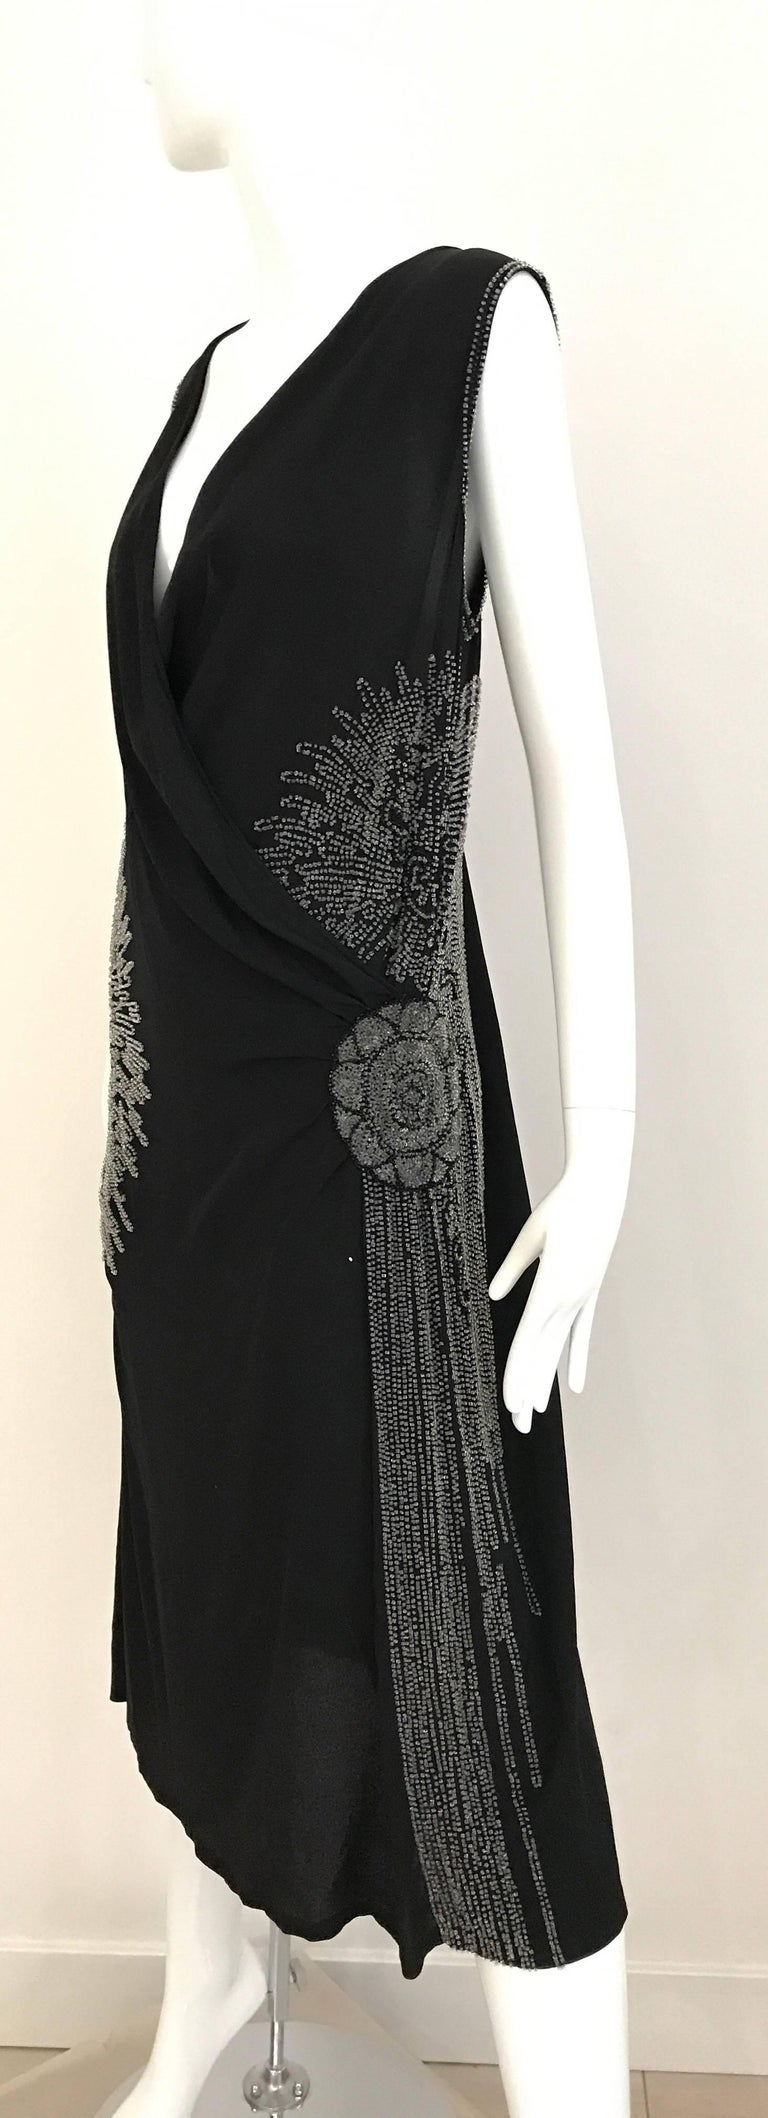 Beautiful Large Size 1920s Black Silk V neck sleeveless flapper dress with clear bugle beads beaded in floral pattern. Fit US SIZE 6/8 Bust : 40 inch Waist: 34 inch Hip: 42 inch Length 44 inch